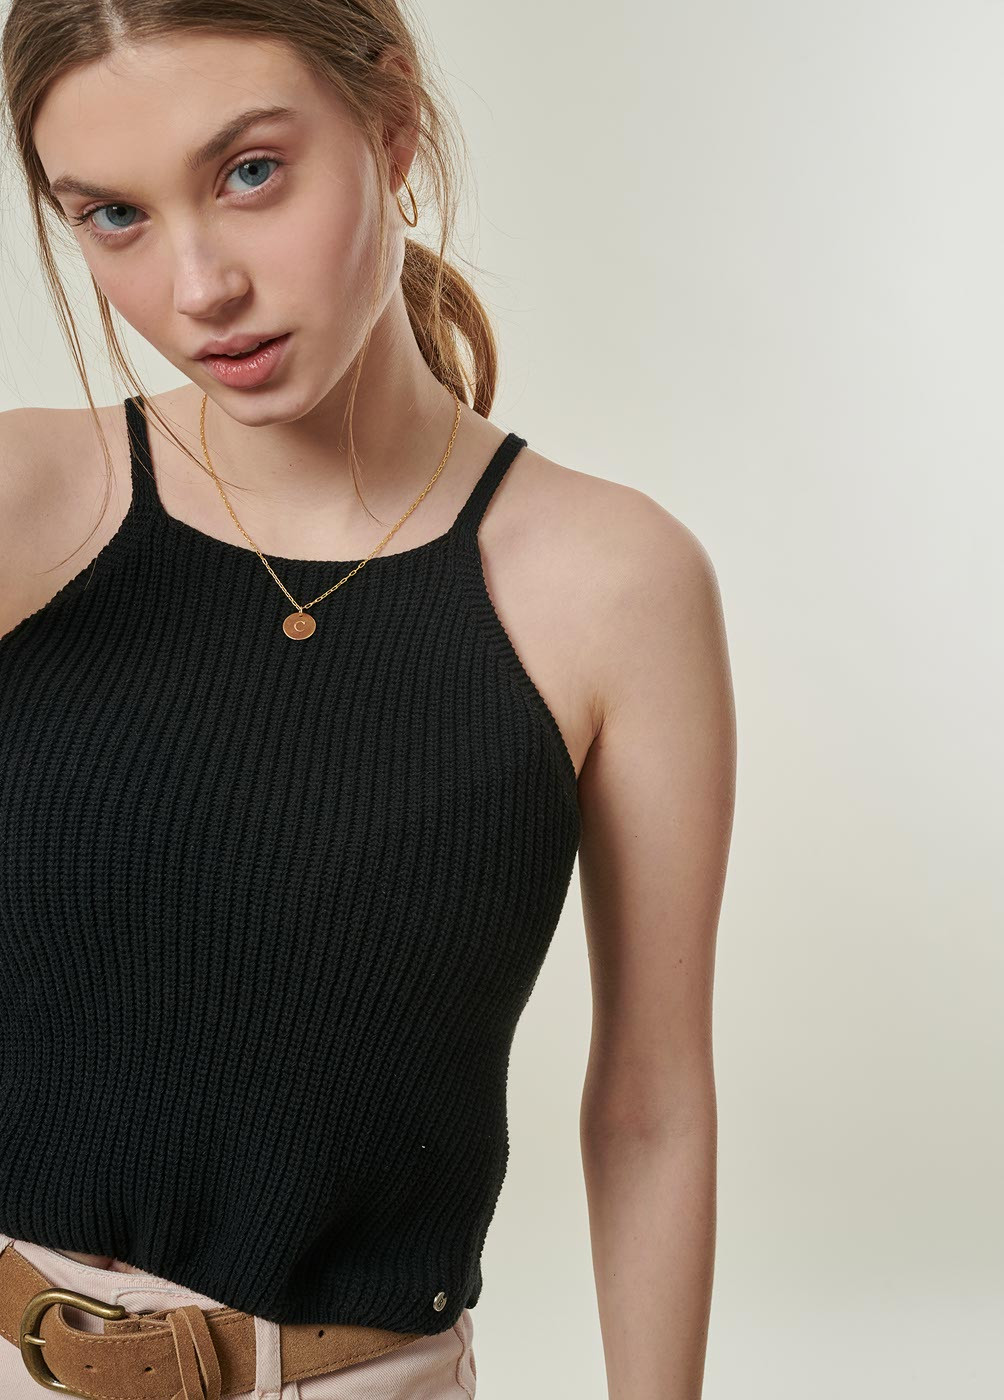 AMBRA HALTER NECK TANK TOP